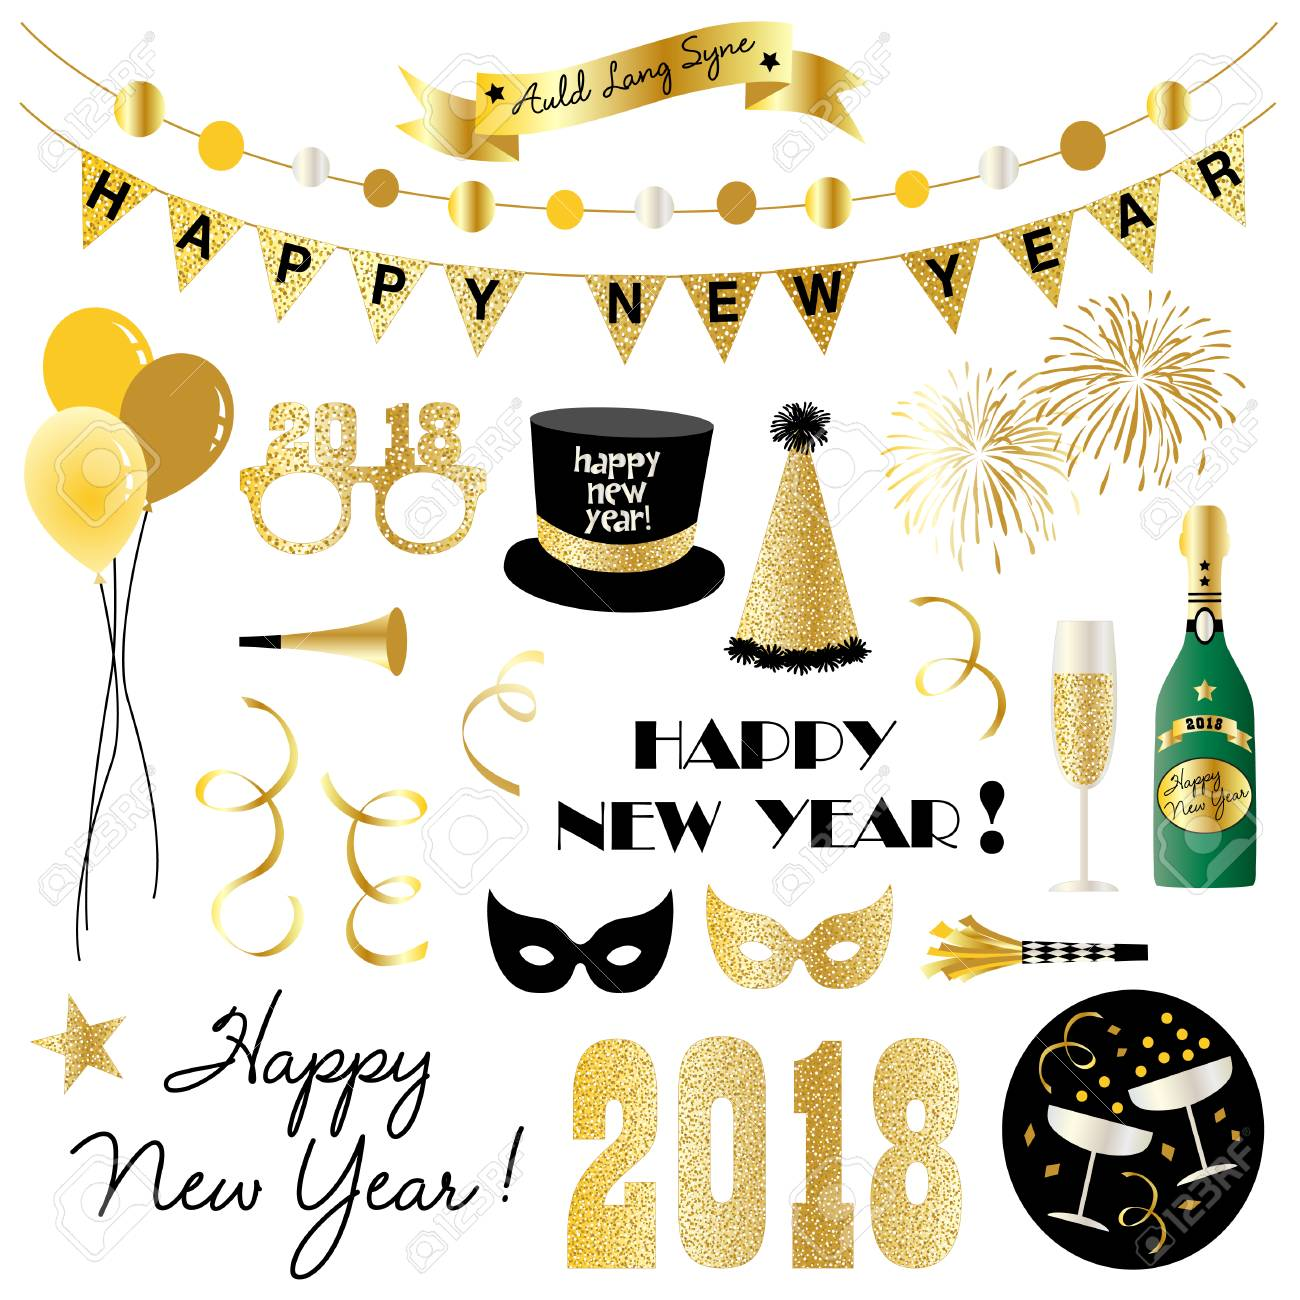 New years eve clipart..